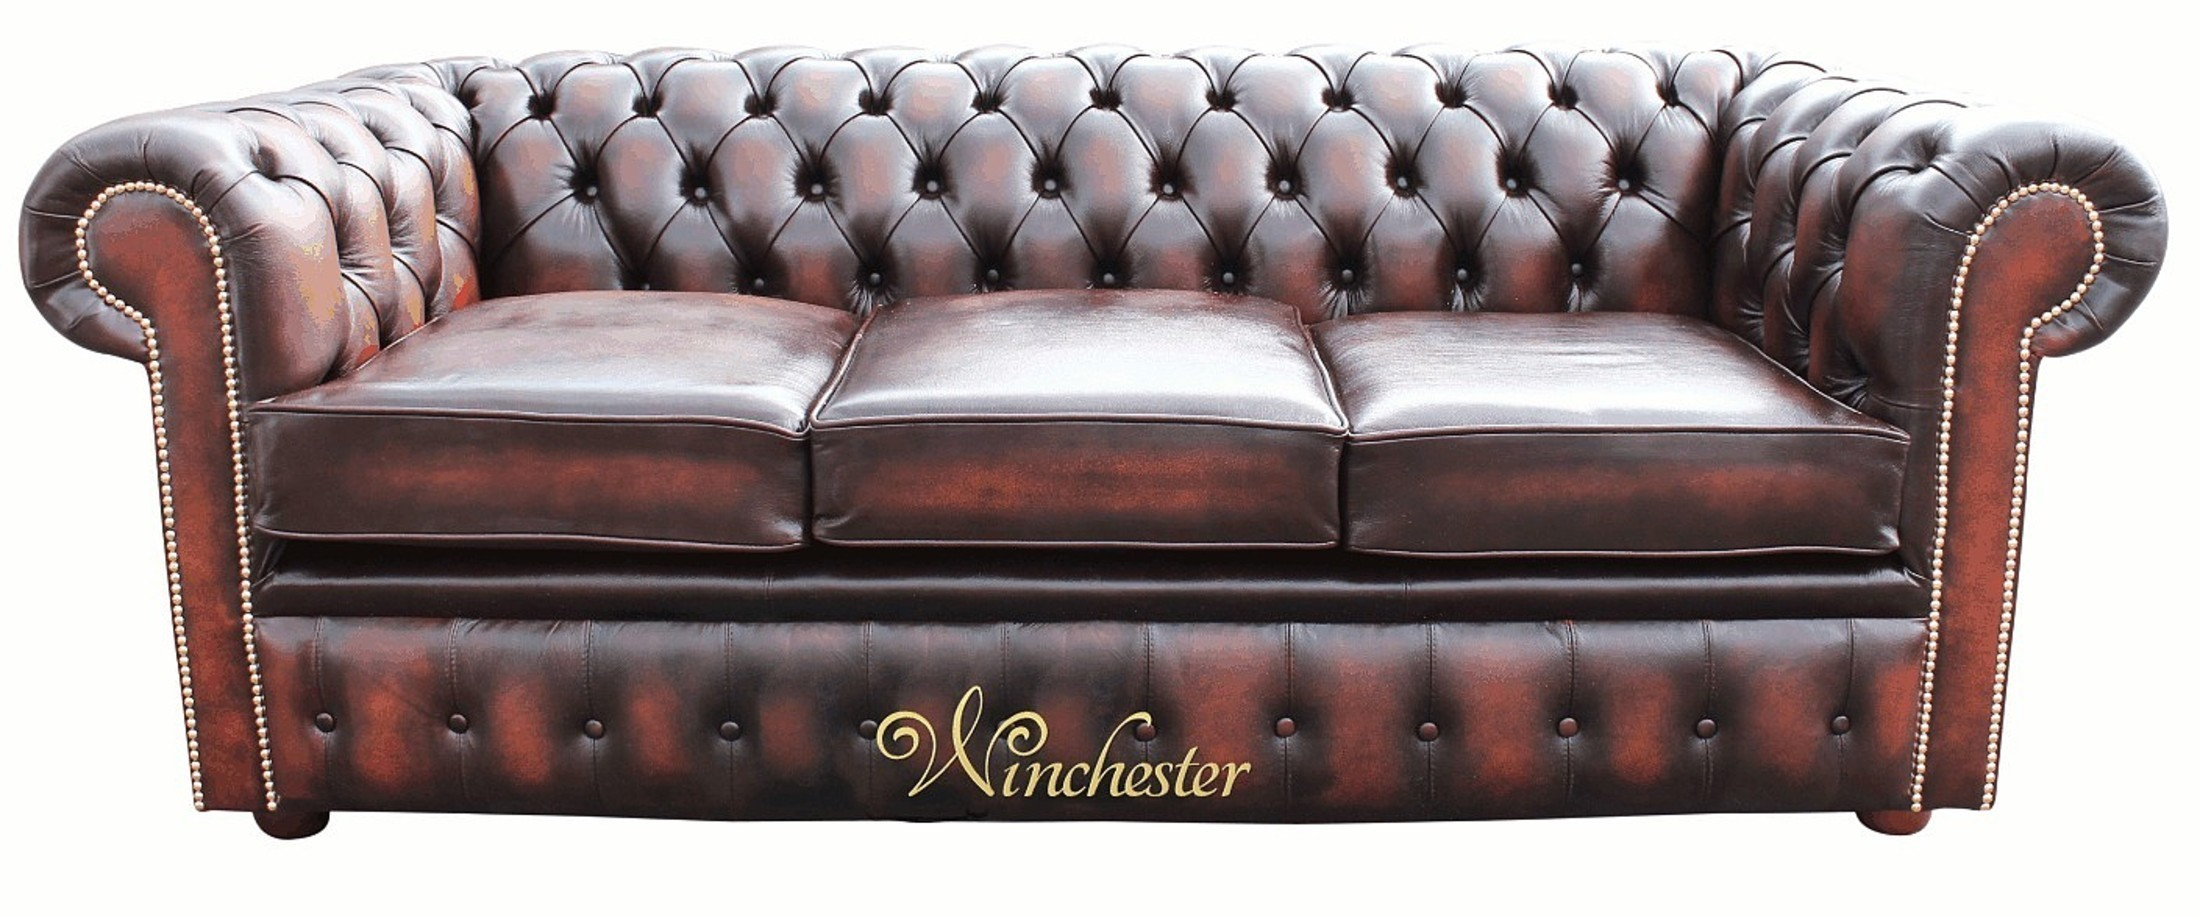 Exceptionnel Chesterfield 3 Seater Sofa Antique Rust Leather Wc